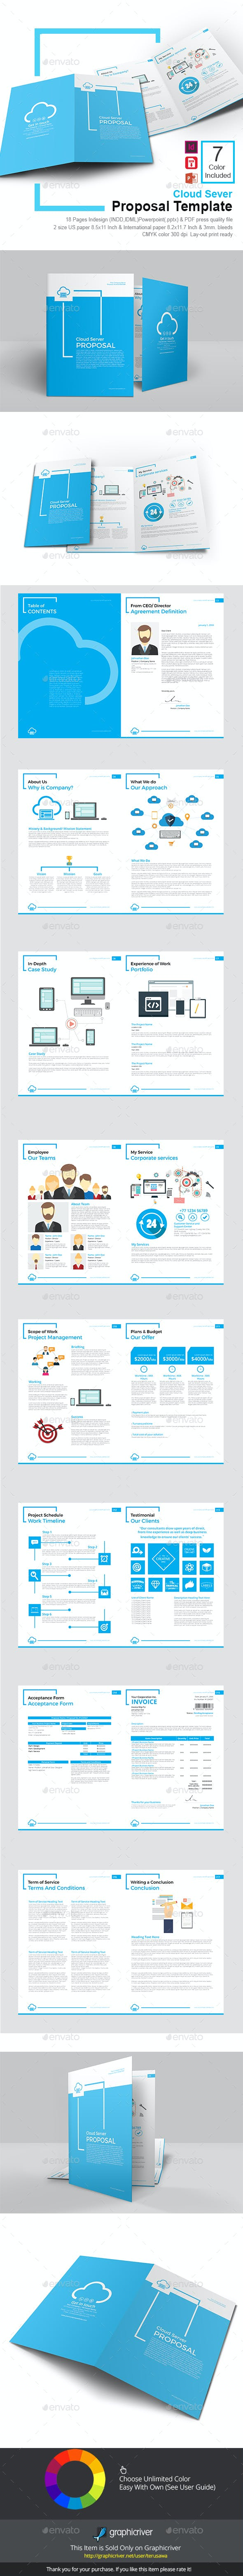 Cloud Sever Proposal Template By Terusawa Graphicriver